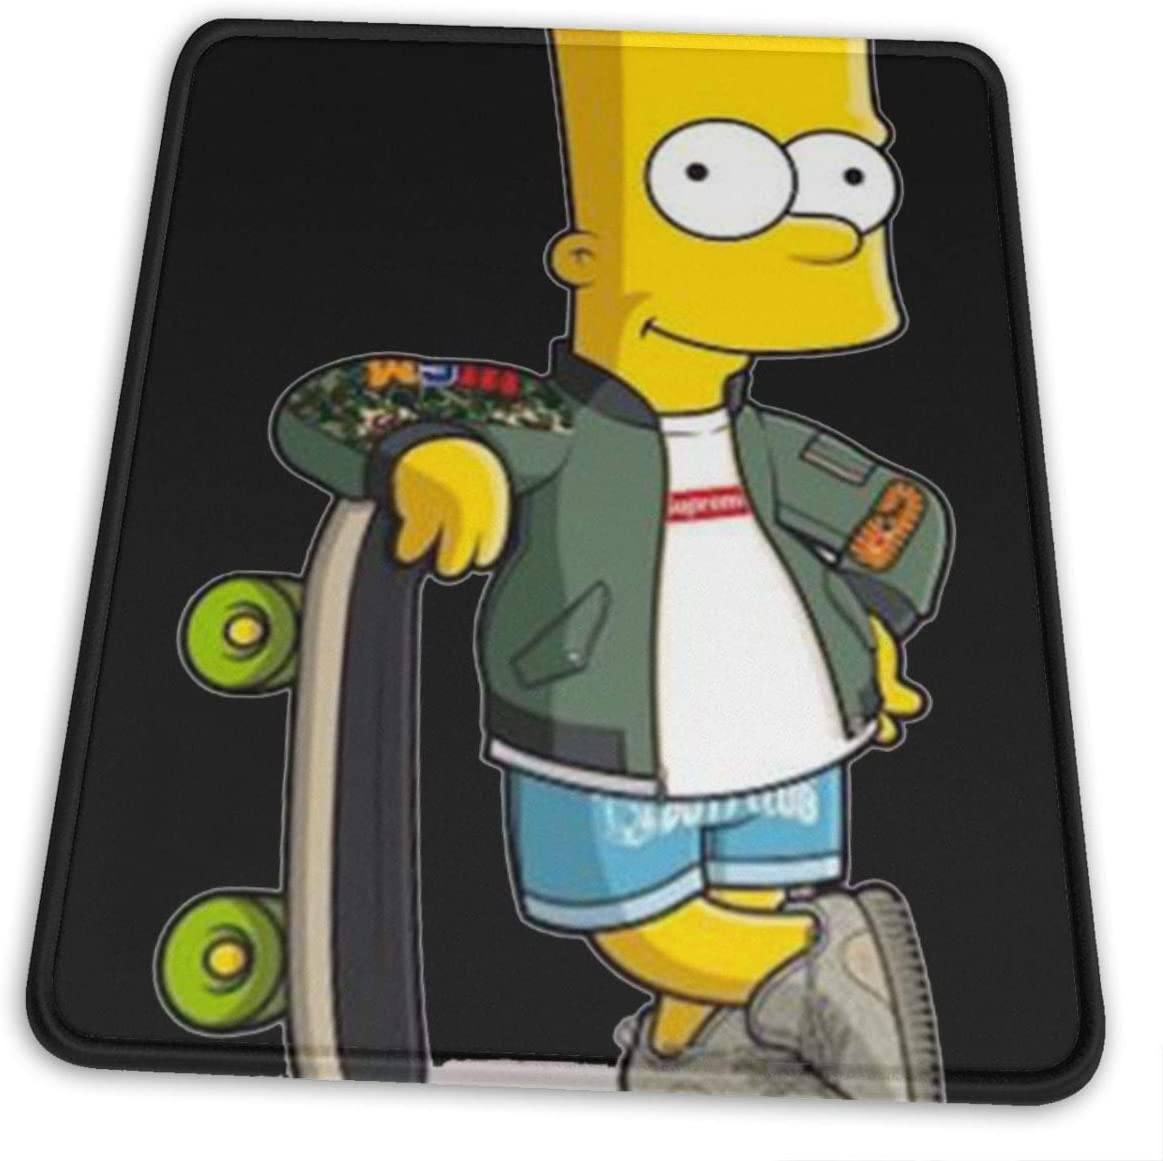 The Simpsons Stylish Printing Design is Durable and Green Mouse Pad